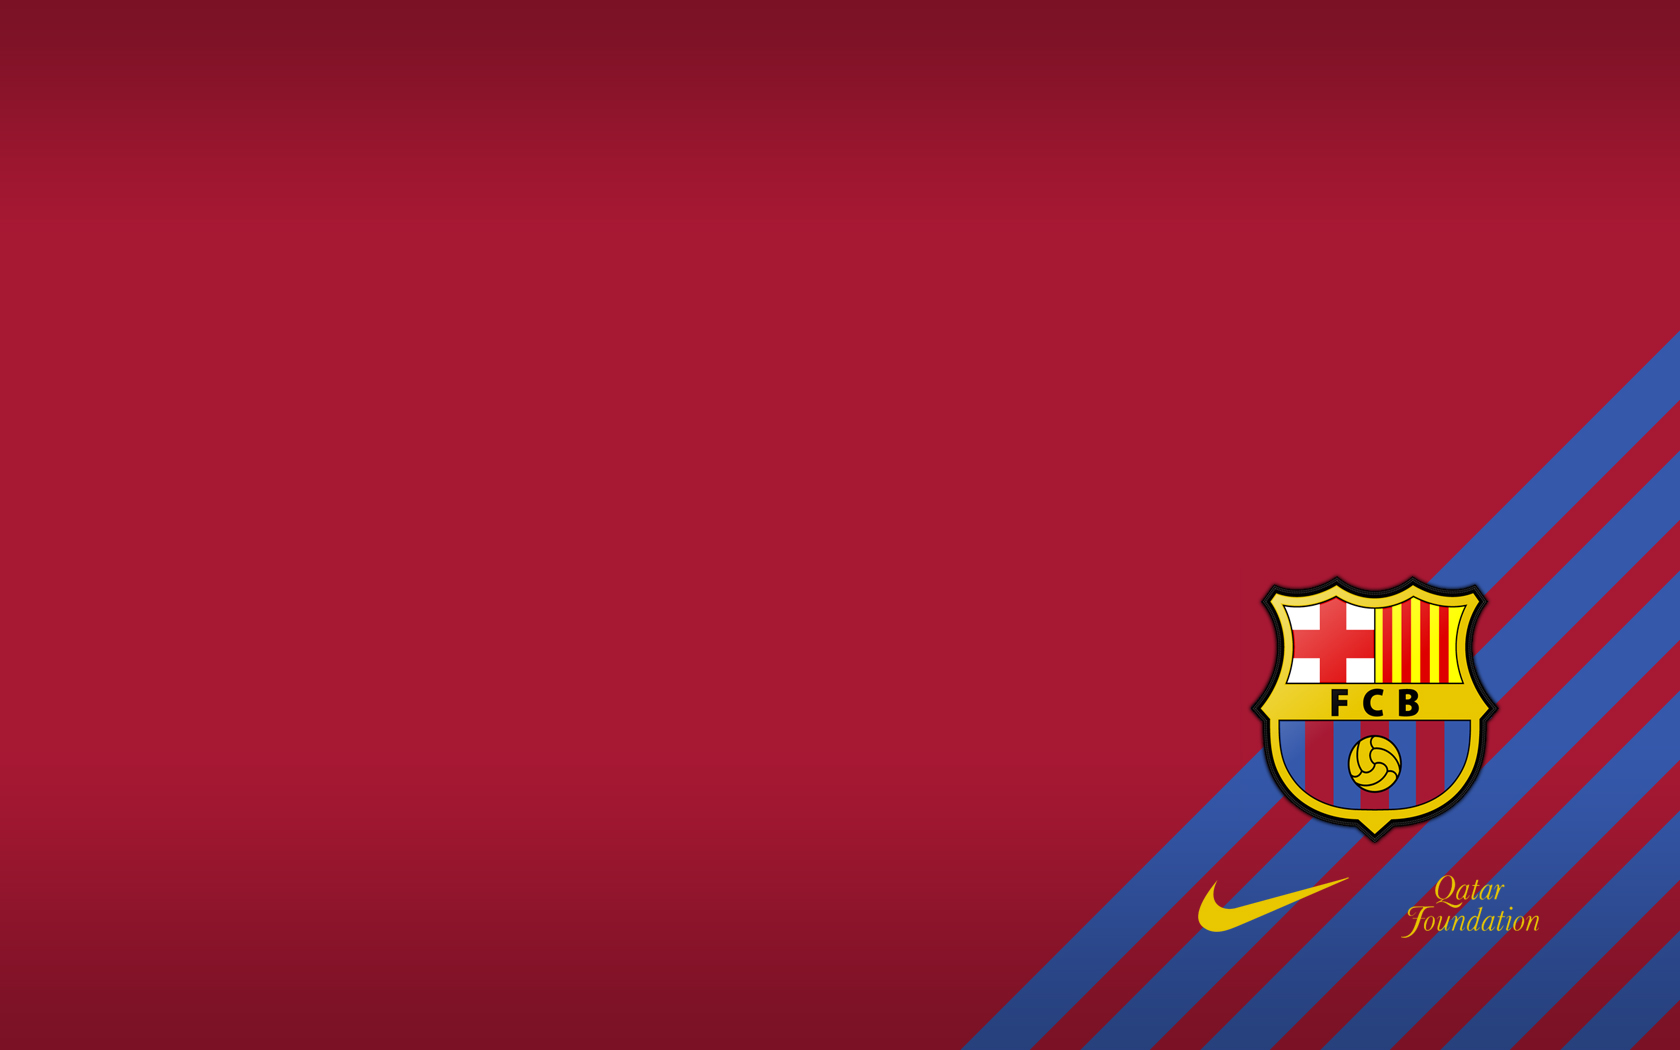 Fc Barcelona Wallpaper By Vkkk Dyatz 1680x1050 pixel Football HD 1680x1050